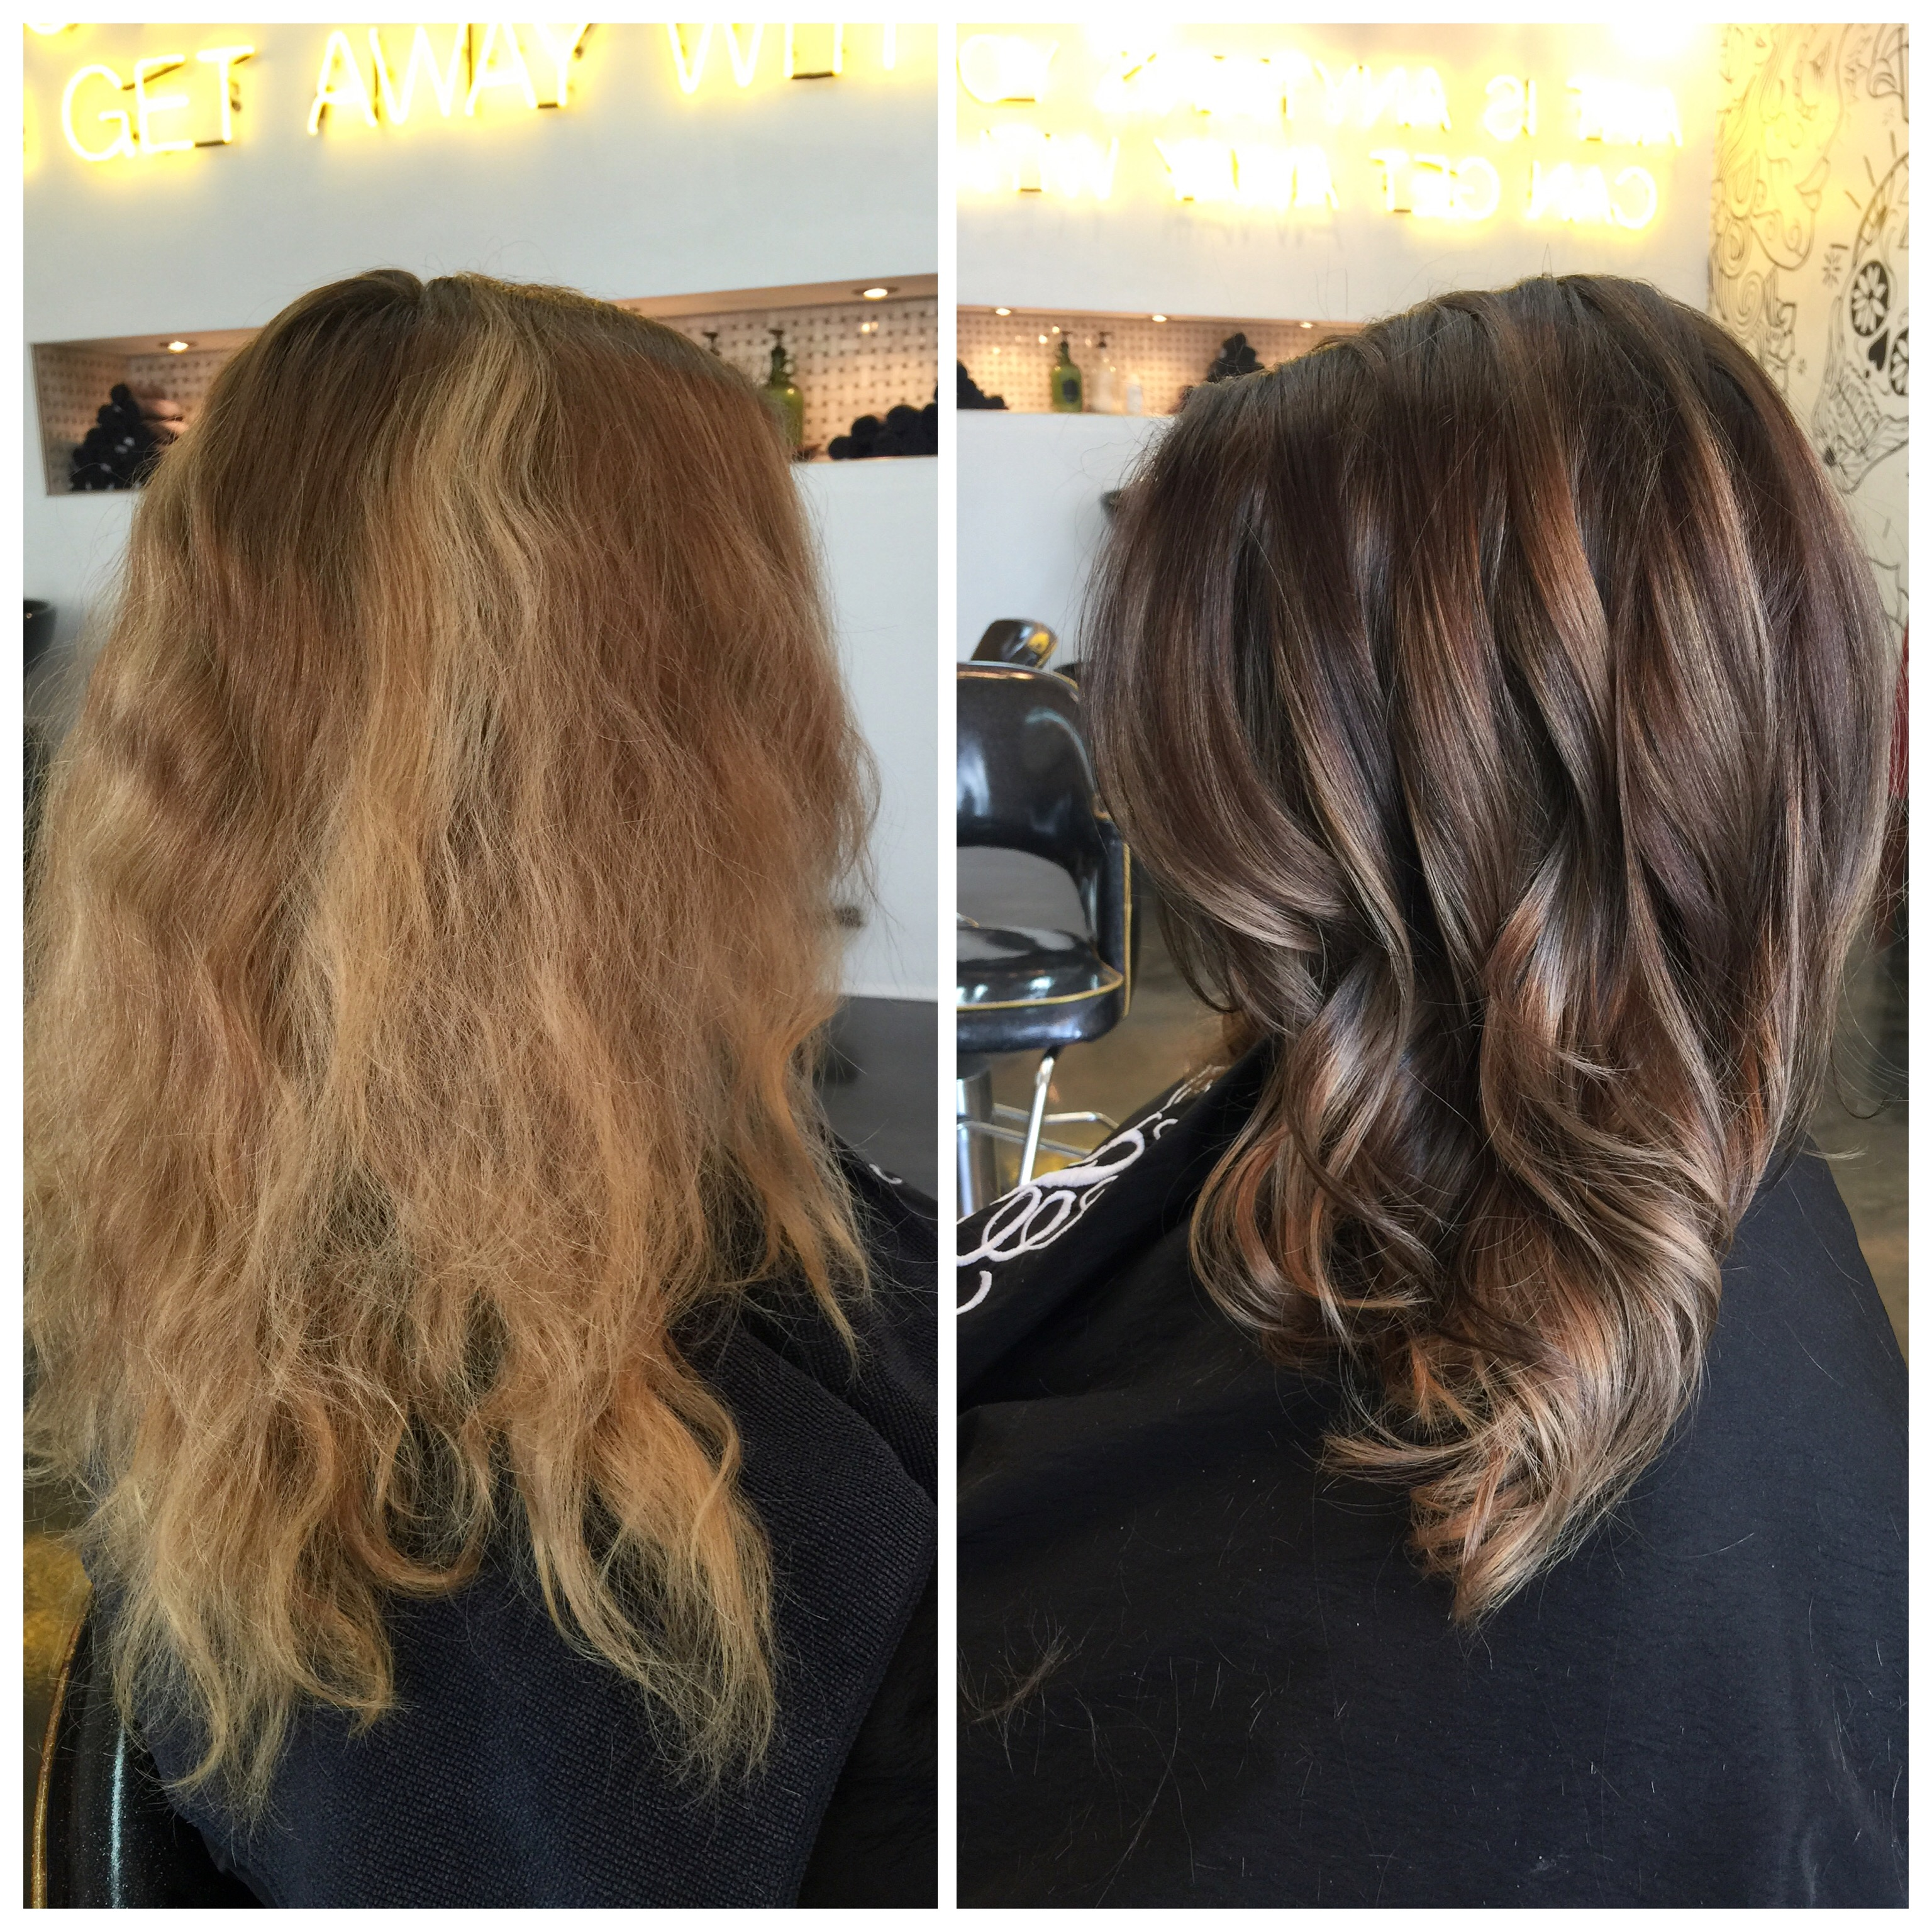 TRANSFORMATION Faded Fuzz To Balayaged Beauty Career